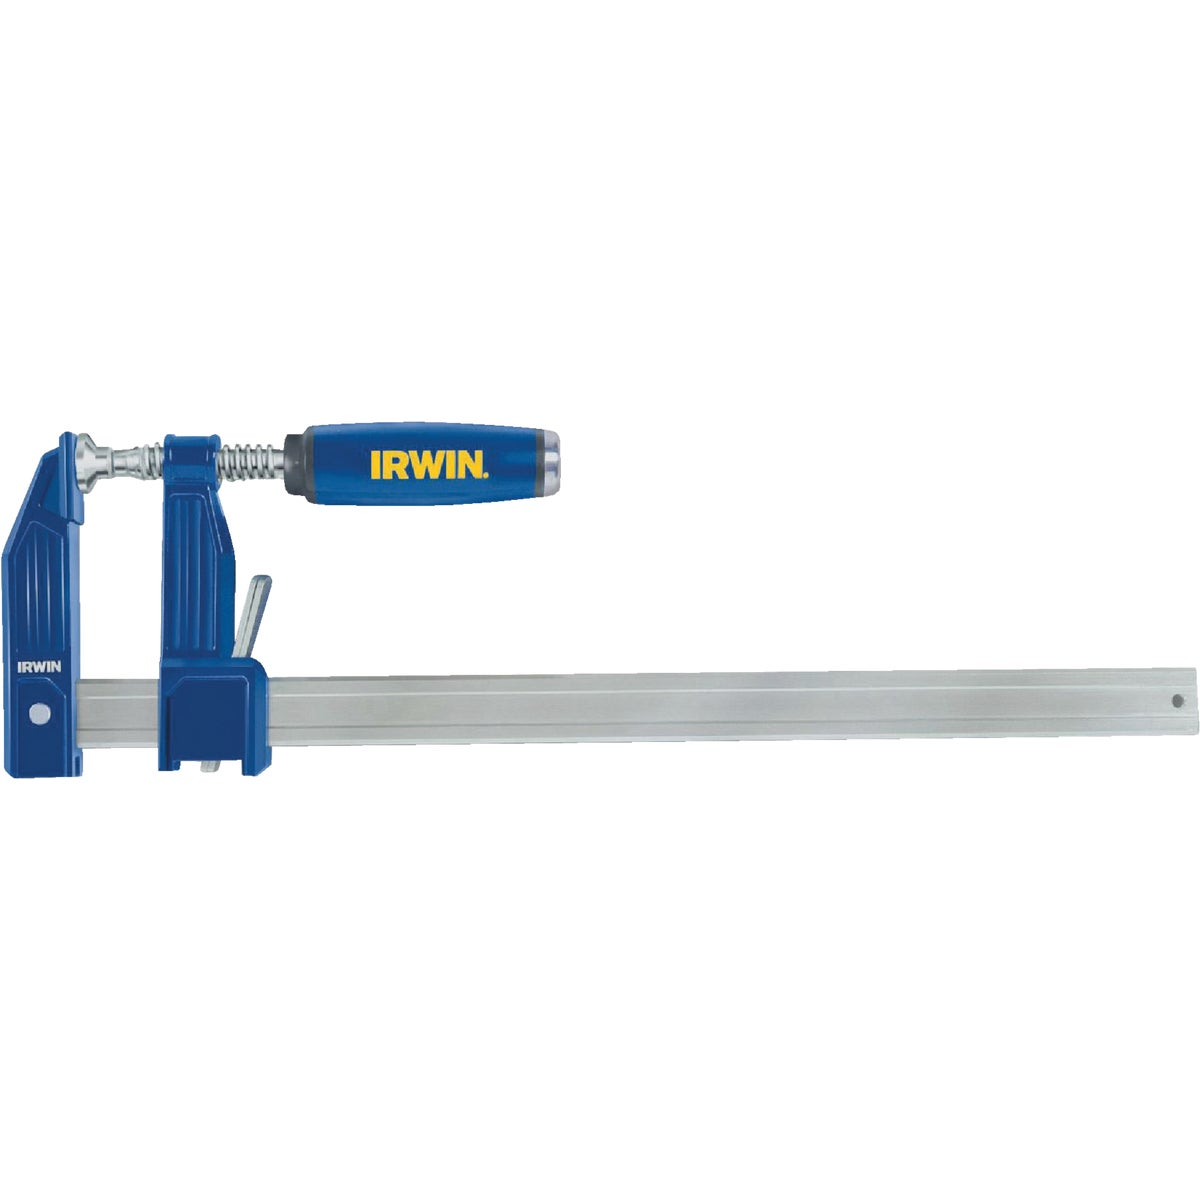 "36"" CLTCH LOCK BAR CLAMP - 223136 by Irwin Industr Tool"